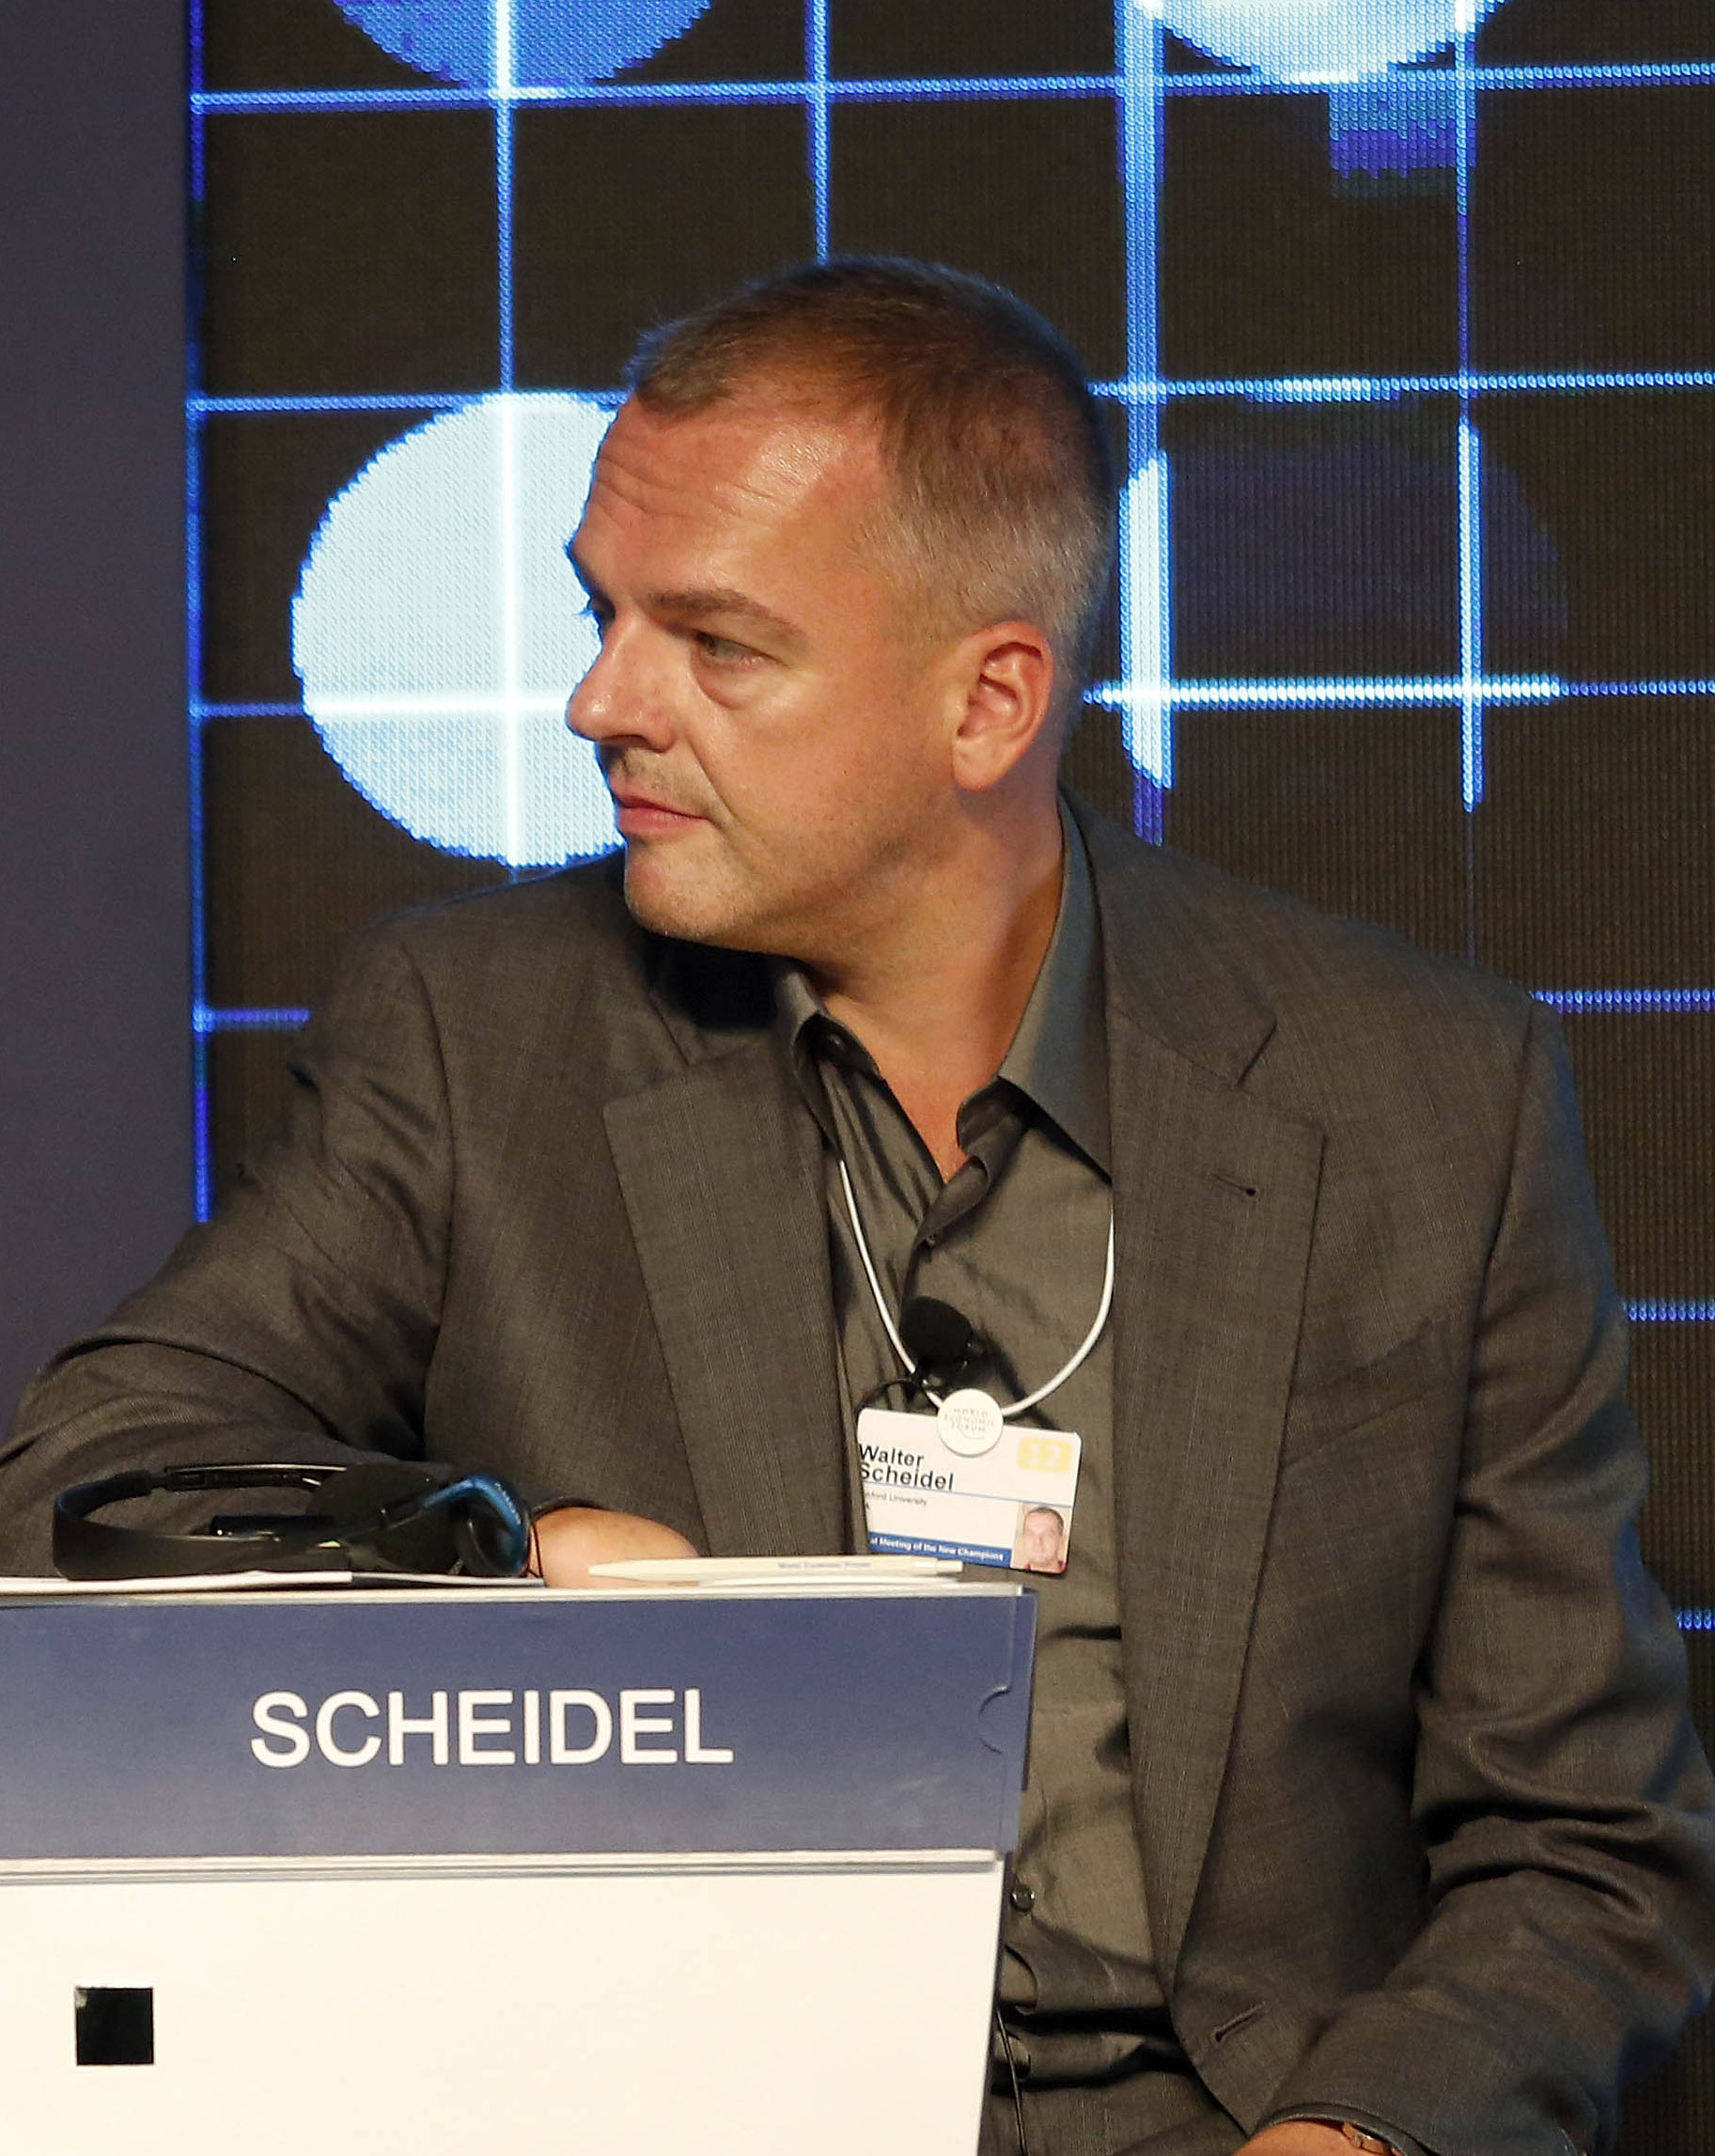 Scheidel at the [[World Economic Forum]] Annual Meeting of the New Champions in 2012